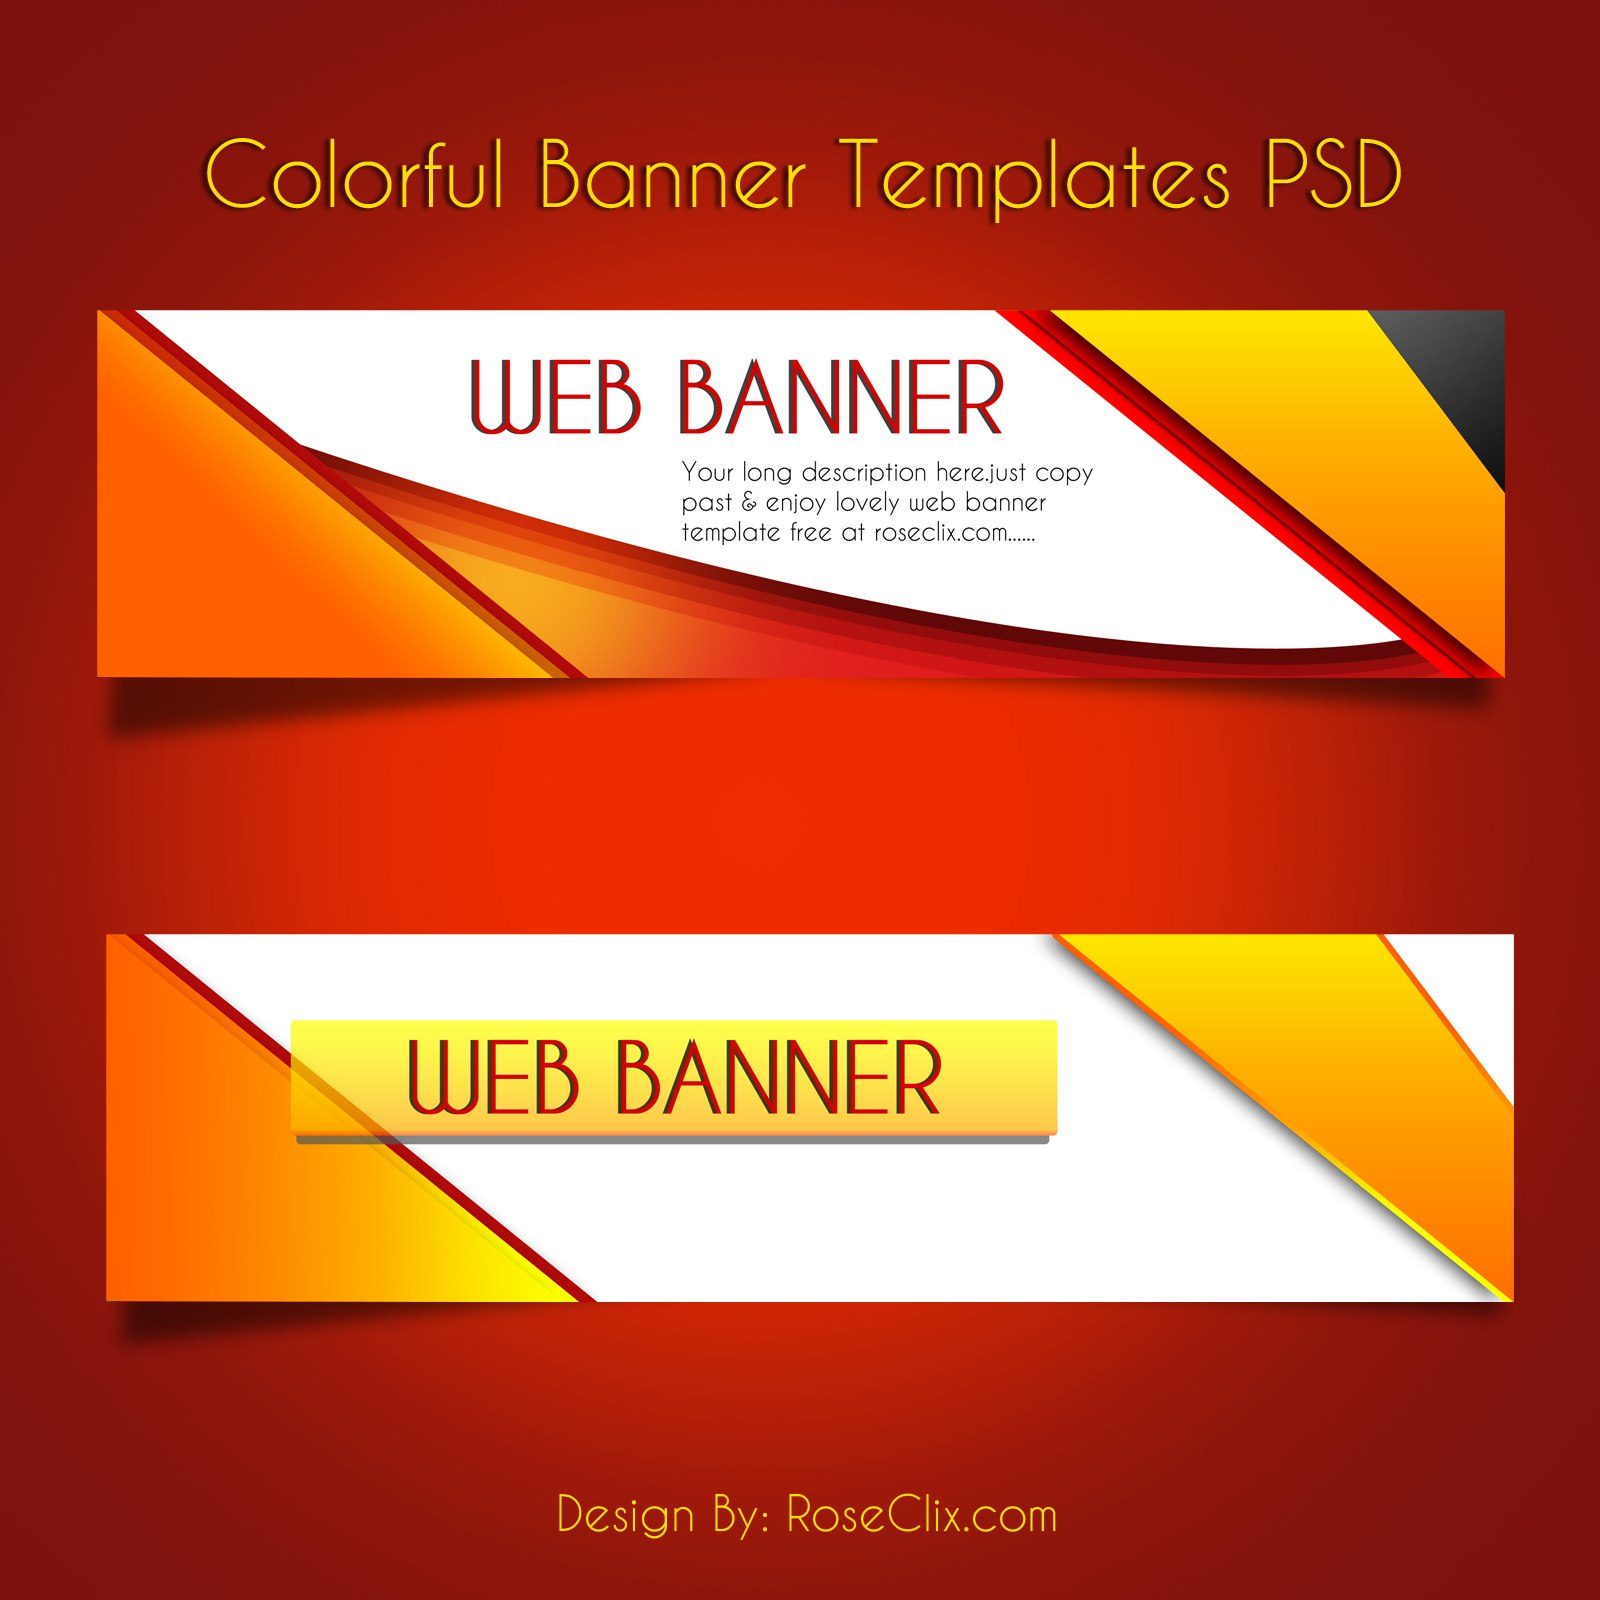 Colorful Web Banners Vector Design Template Psd Free Regarding Free Website Banner Templates Download